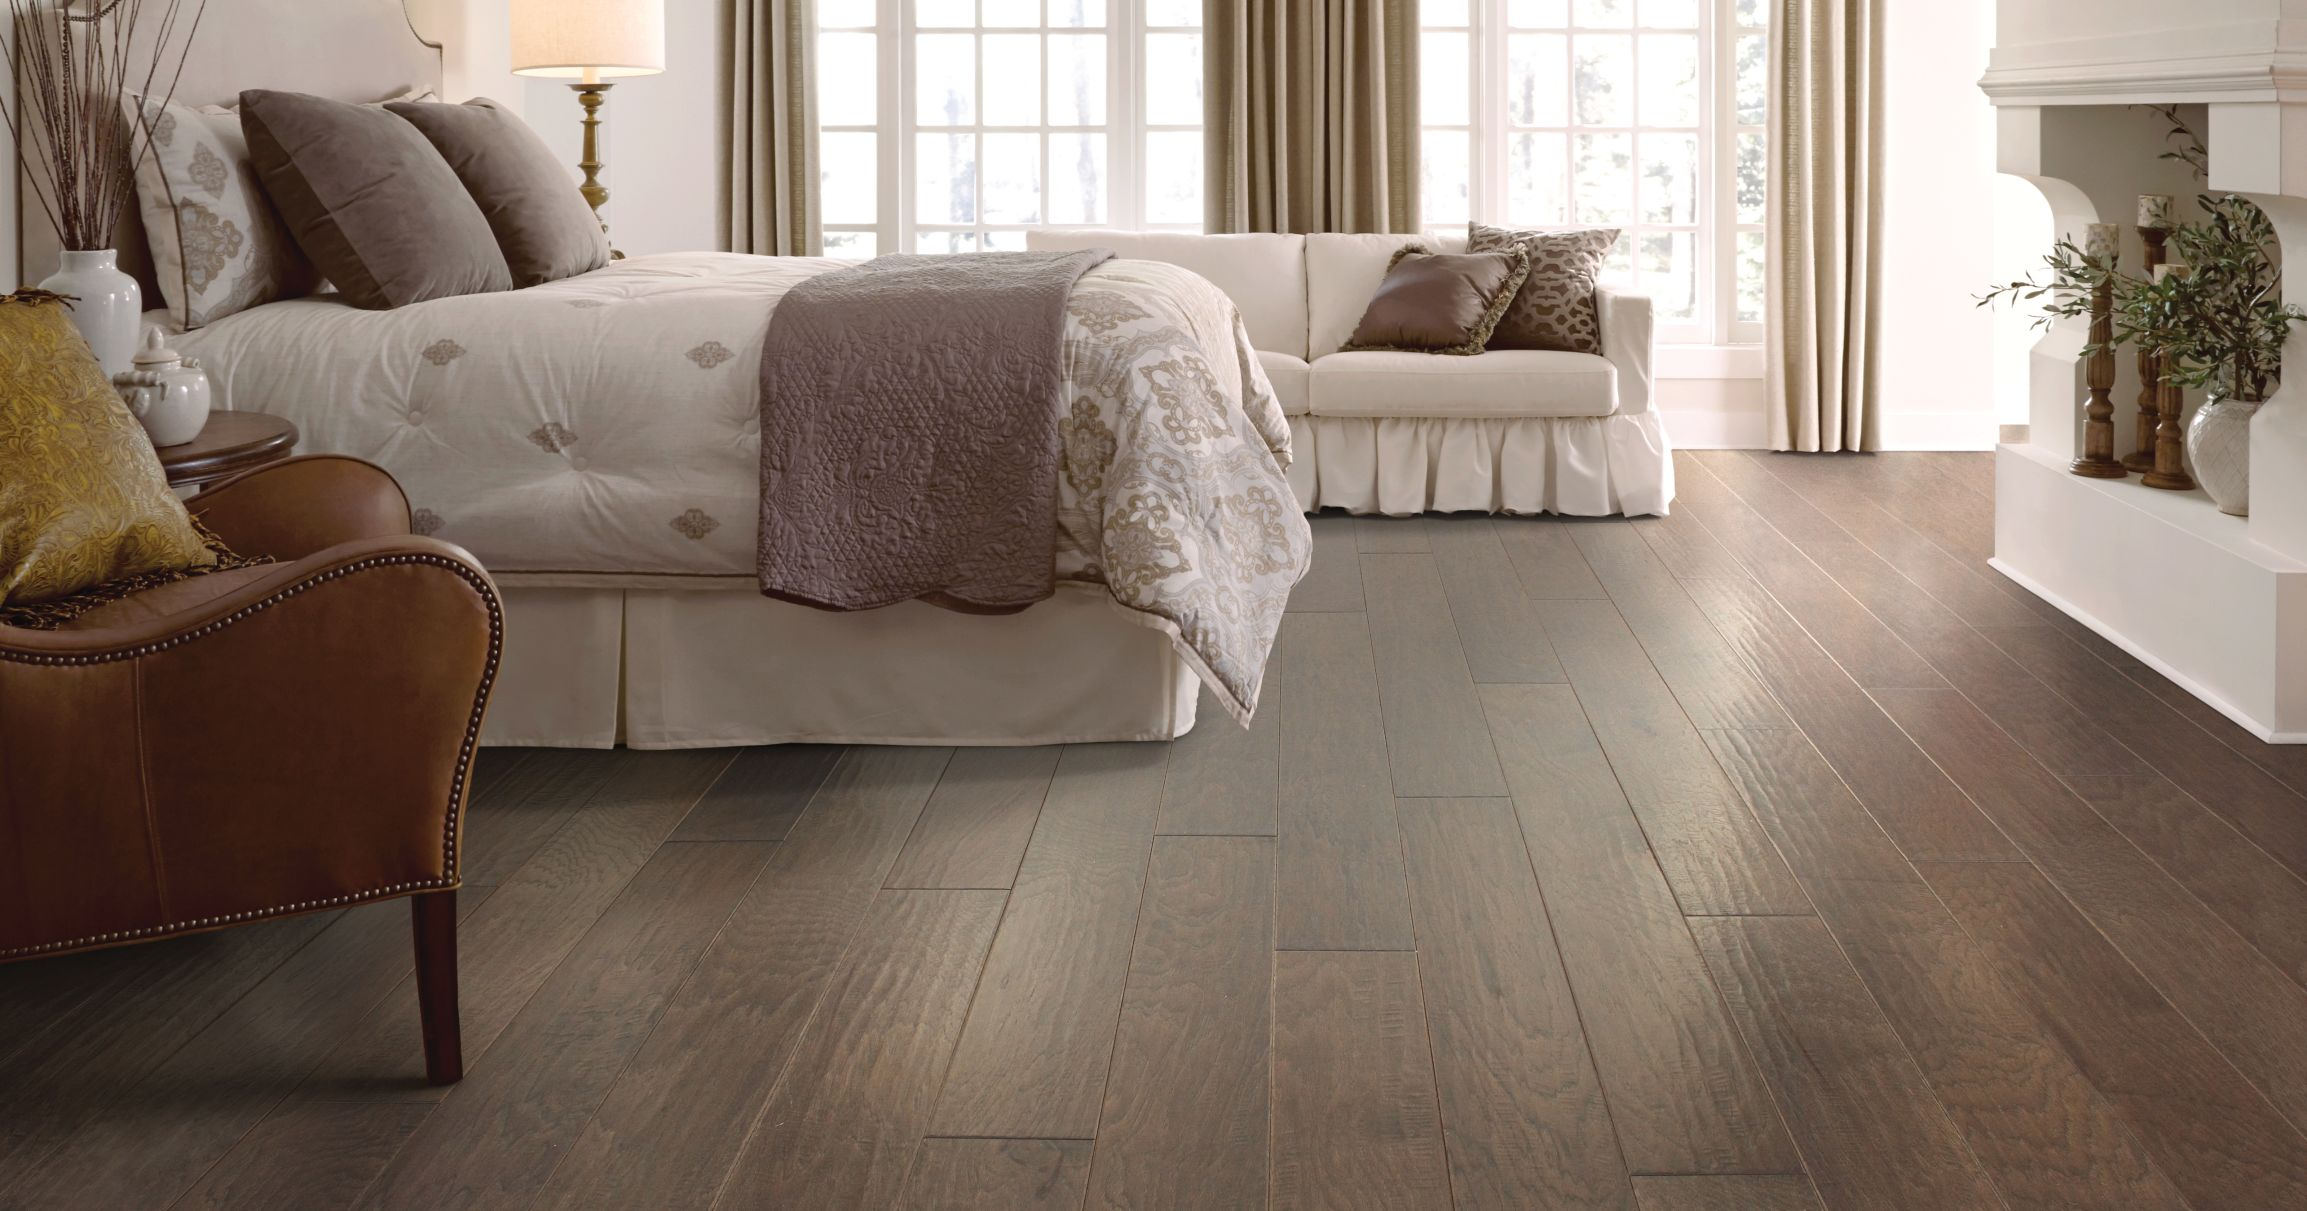 Lf4m6jmygac9erw28dqhg the colors just work so well together and the touchable texture on the floor just beckons click to learn more about shawfloors and their epic plus dailygadgetfo Choice Image